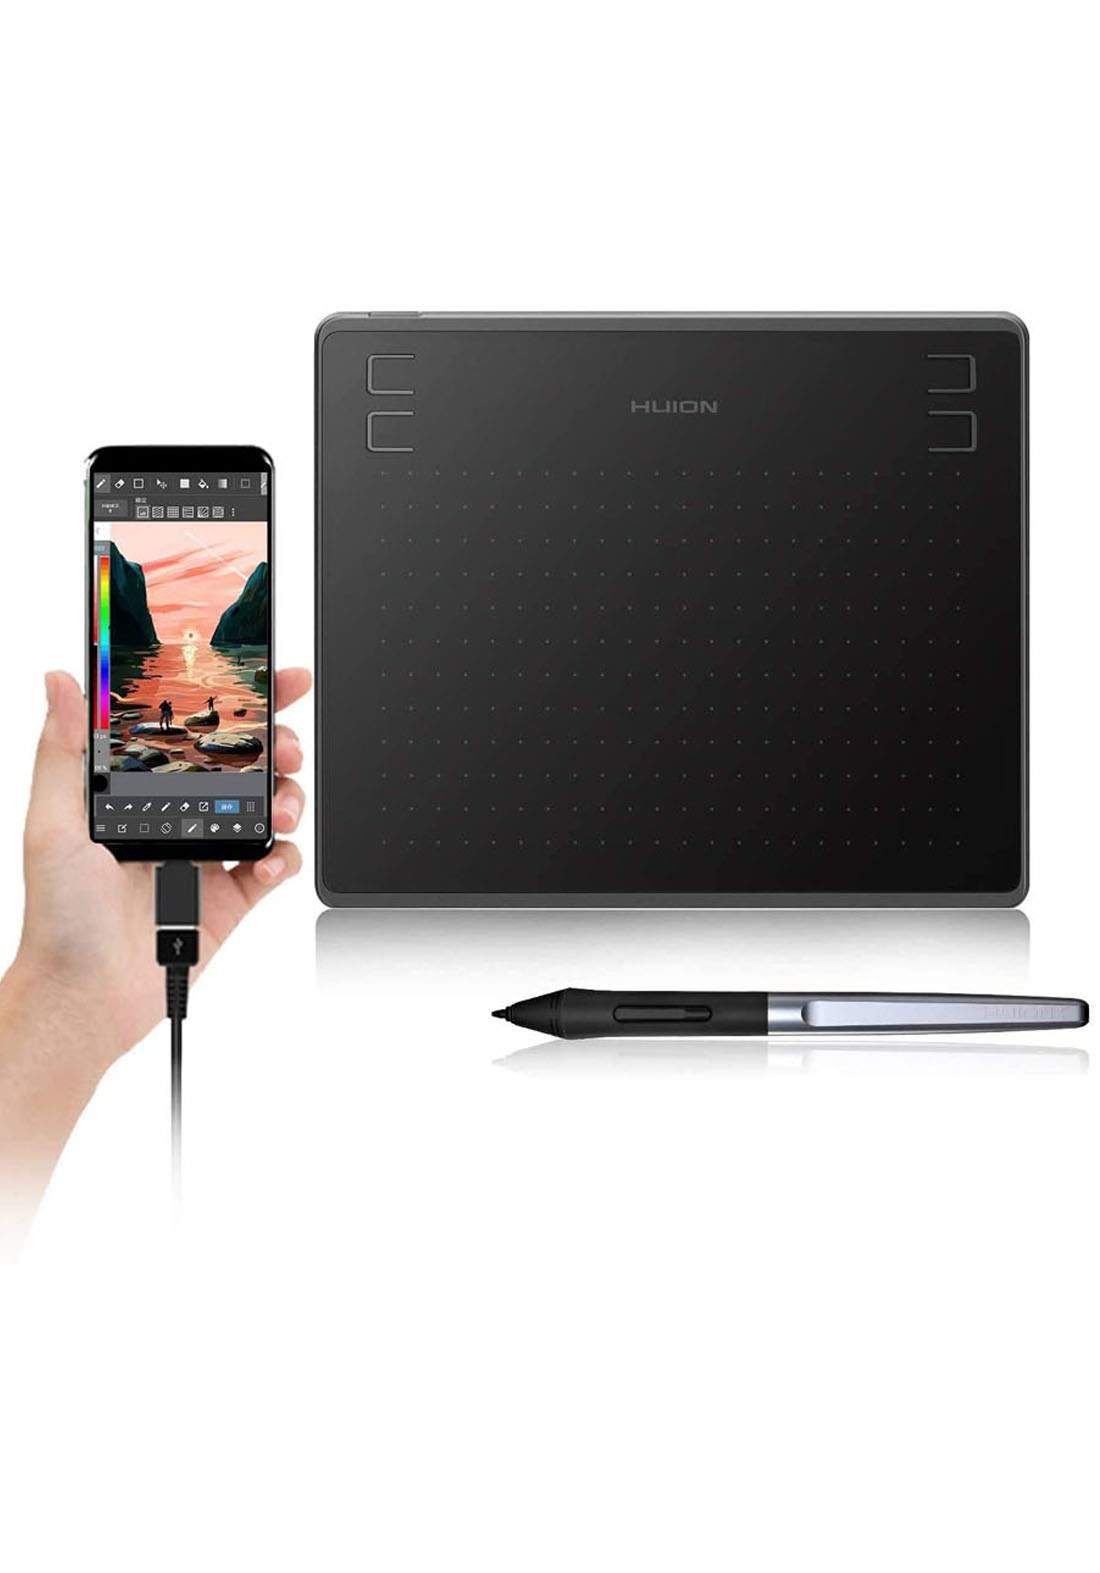 Huion HS64 Digital Graphics Tablets OSU Drawing Tablet with 8192 Battery-Free  تابلت رسم وكتابة